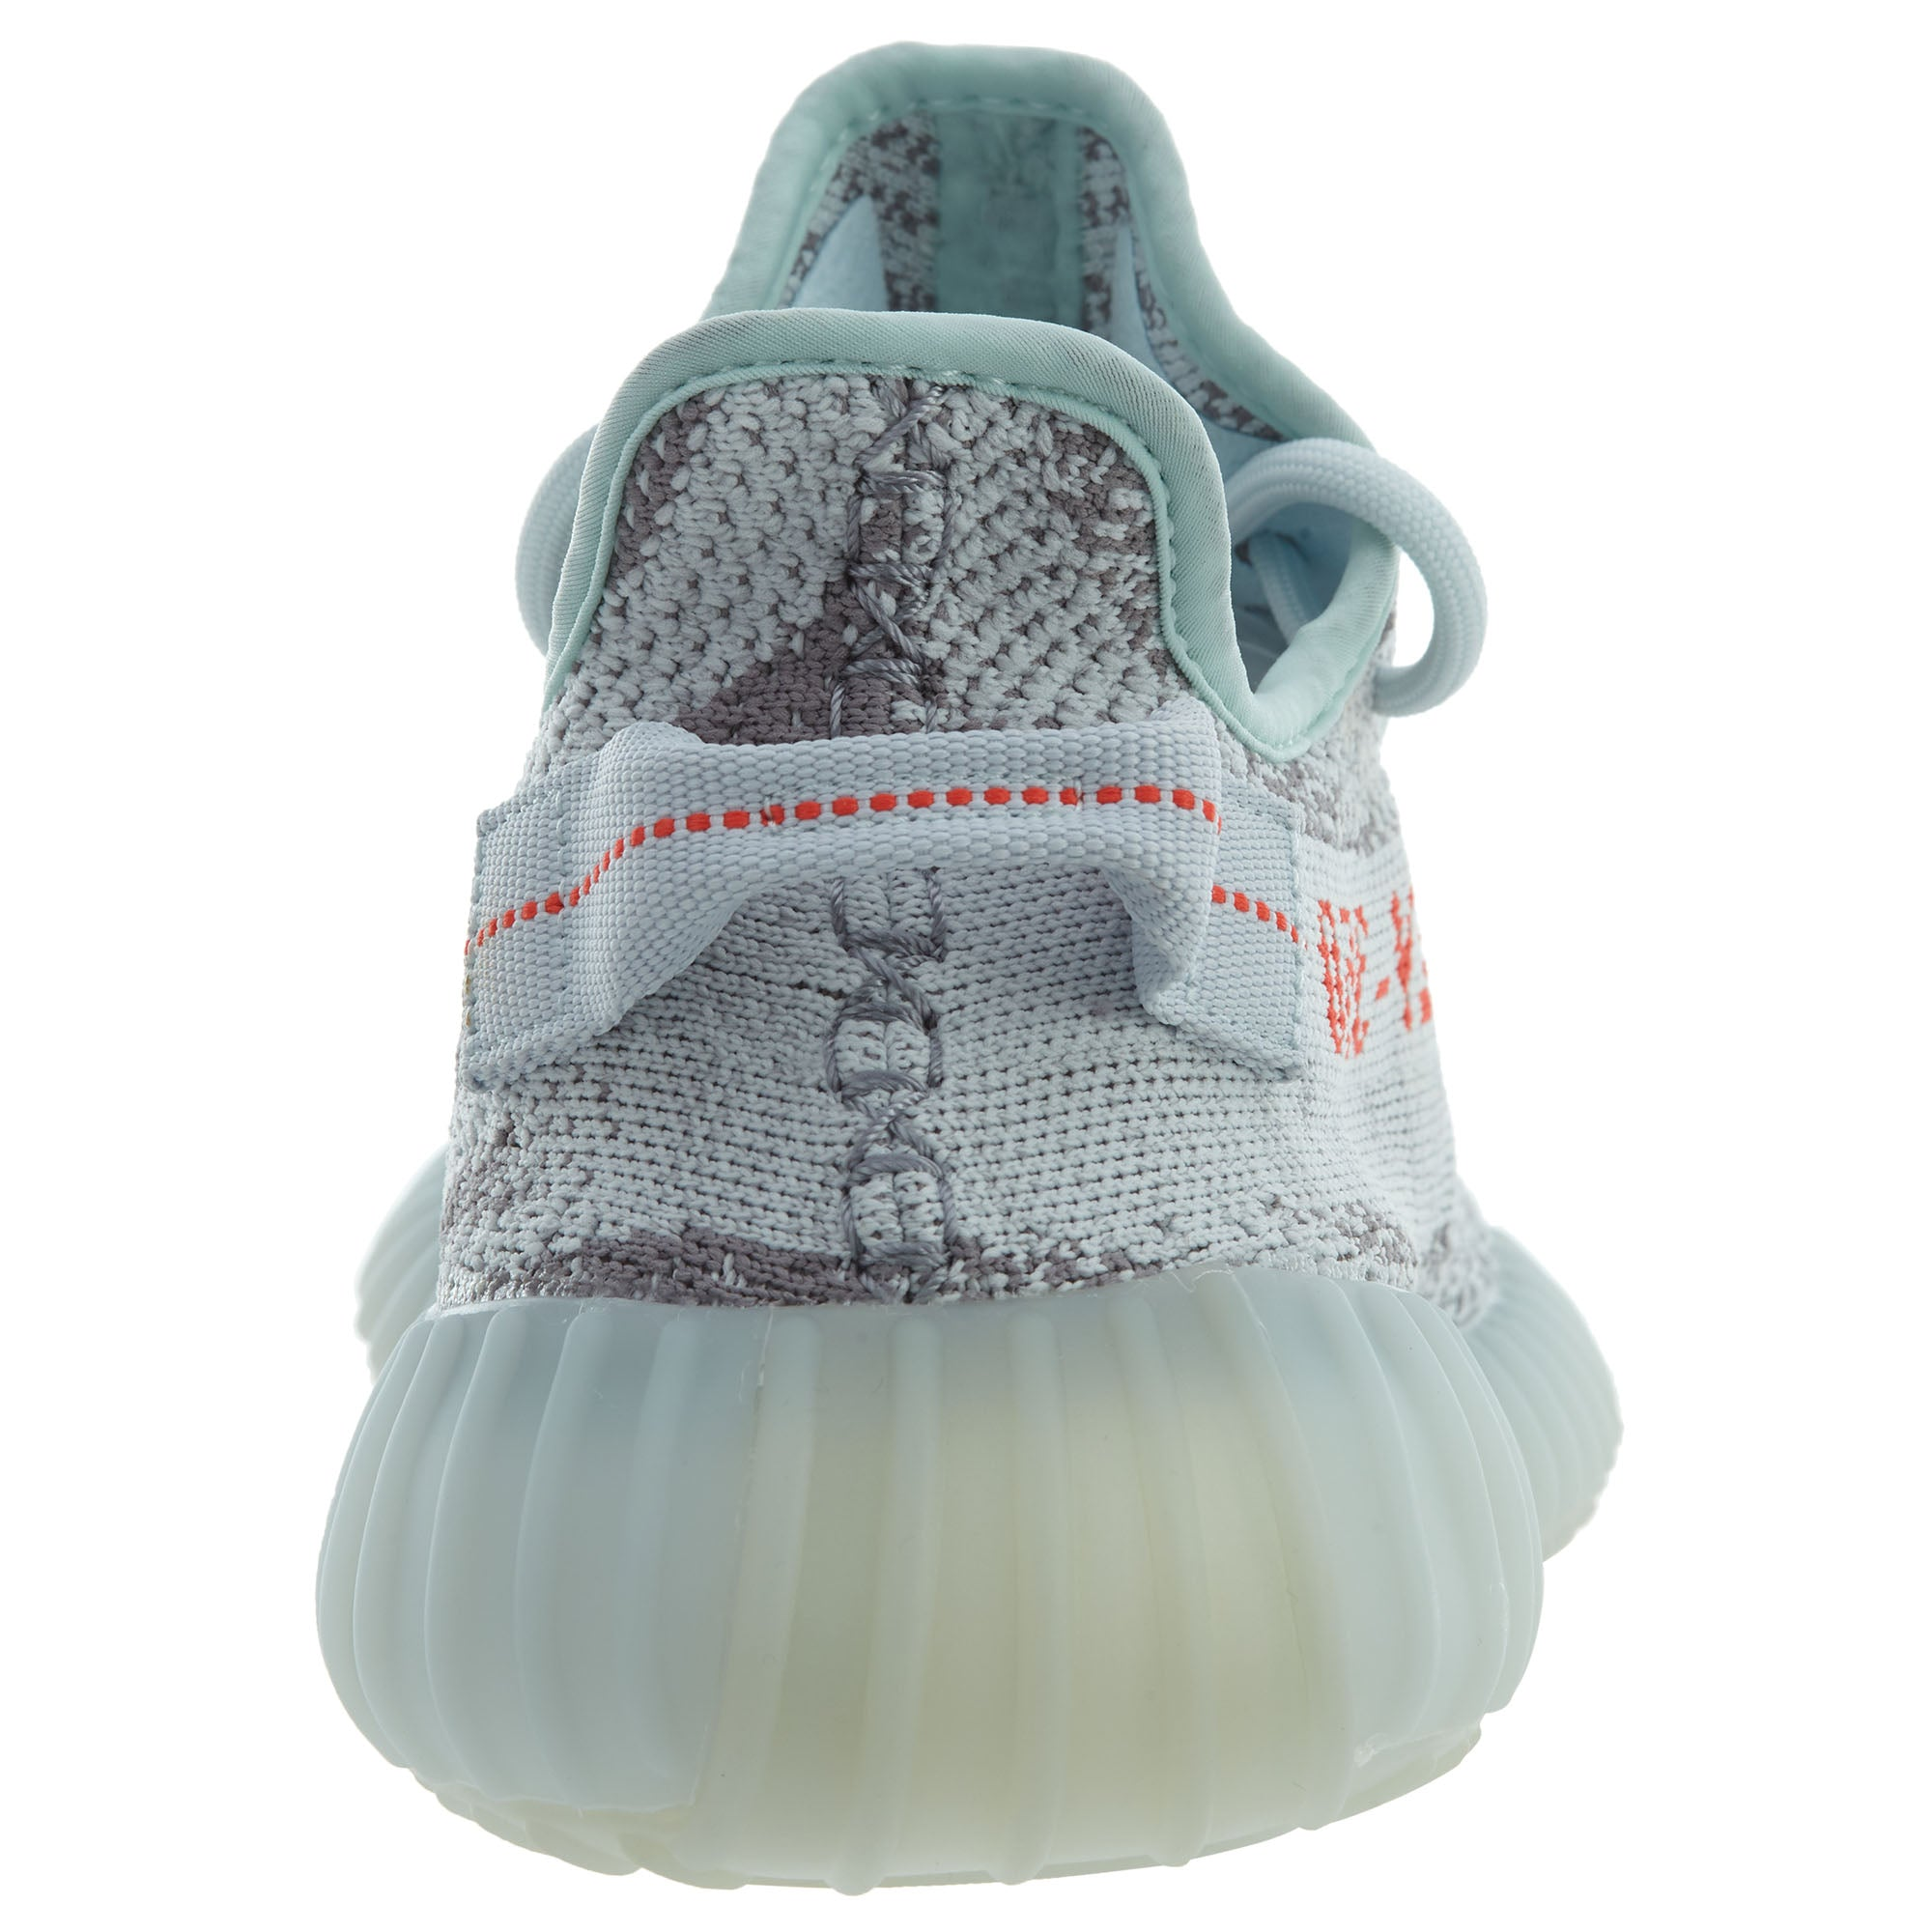 32a7146123161 Adidas Yeezy Boost 350 V2 Blue Tint. ADIDAS   Athletic Shoes   Sneakers